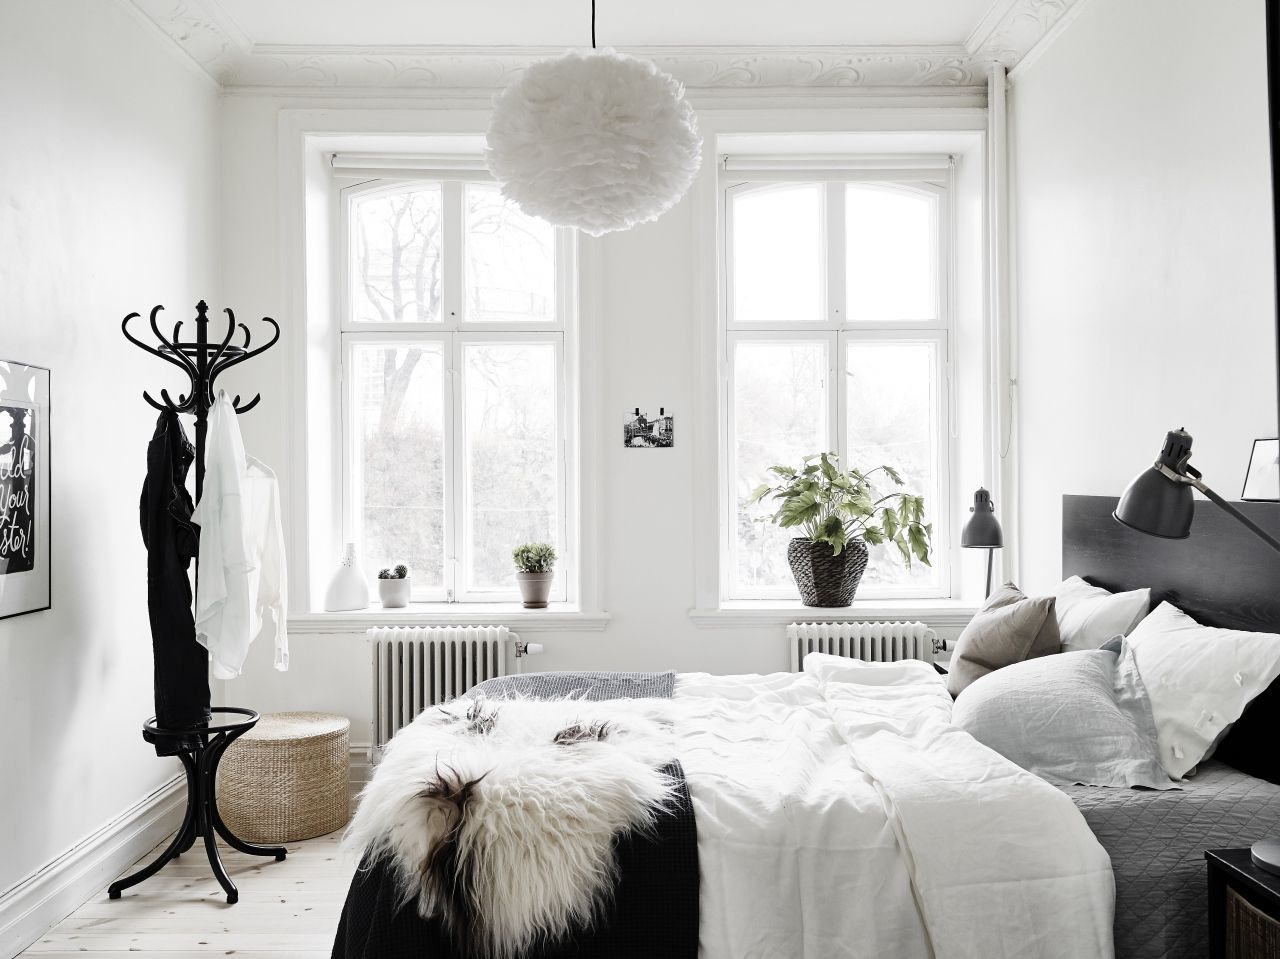 Mooie Slaapkamer Lamp : Yep de lamp please!! : vita eos feather lamp fits perfectly to